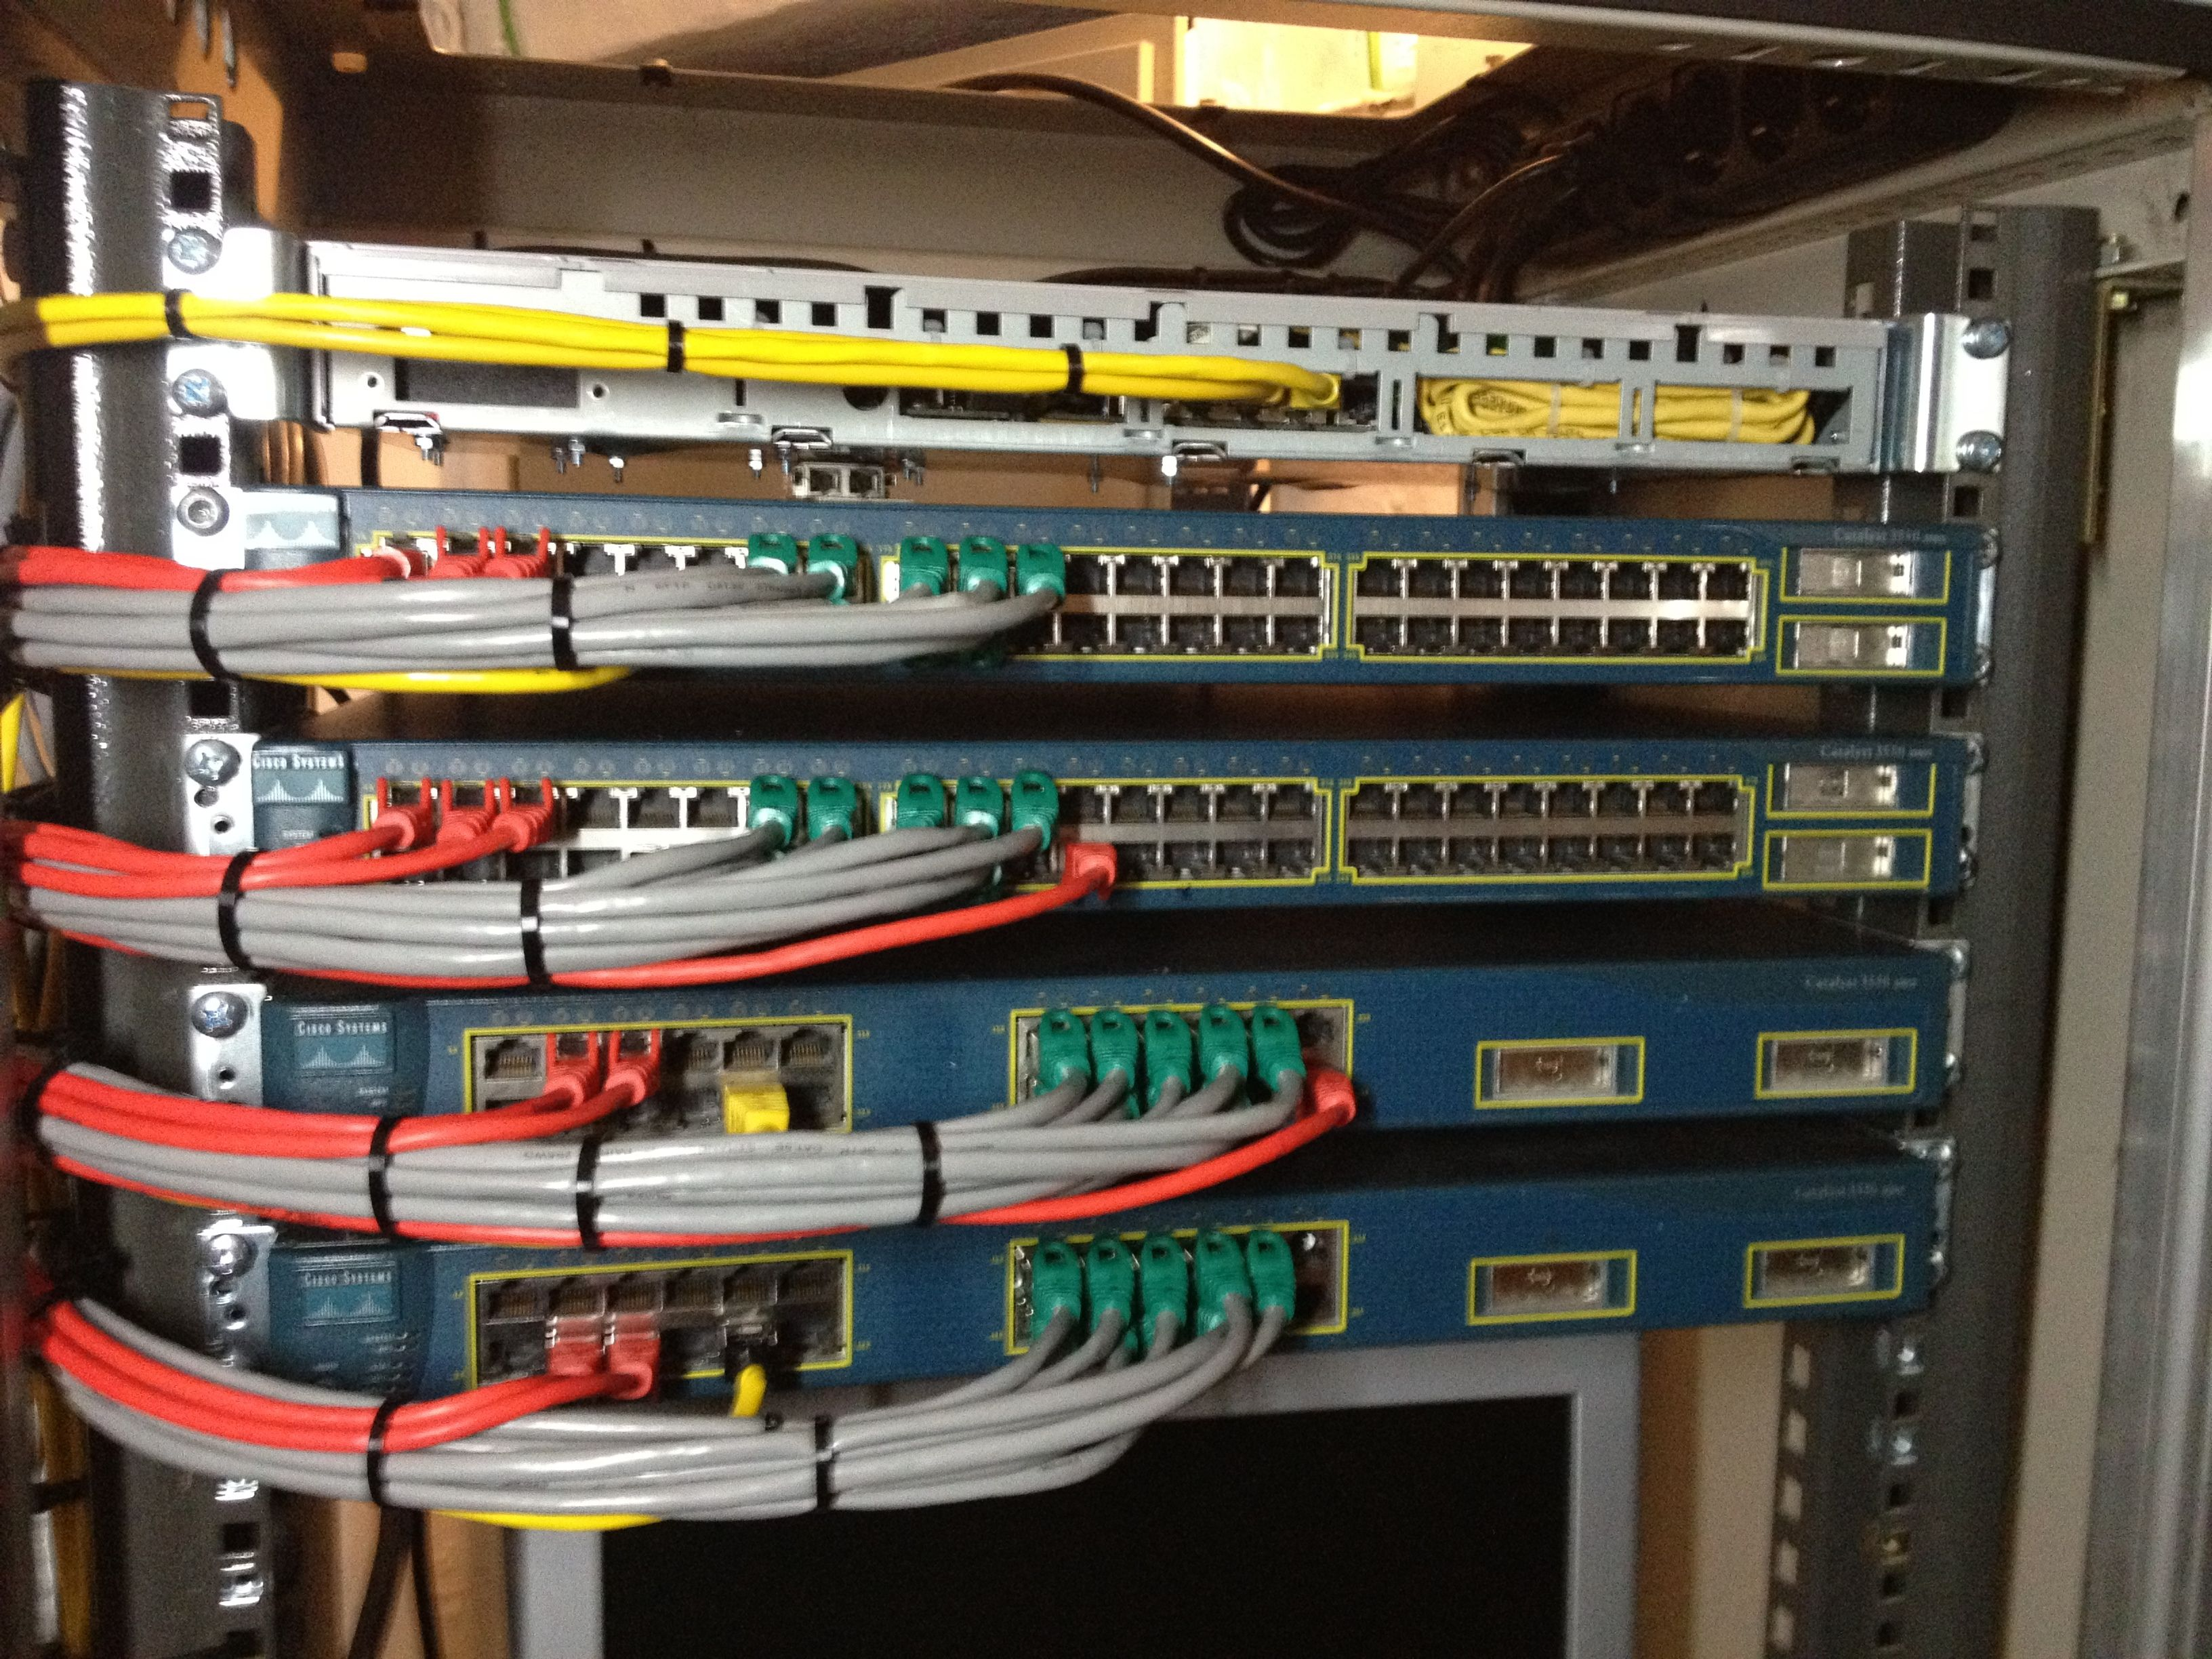 How to build a CCIE rack with GNS3 / dynamips — Part 4, connect the switches  to the GNS3 server